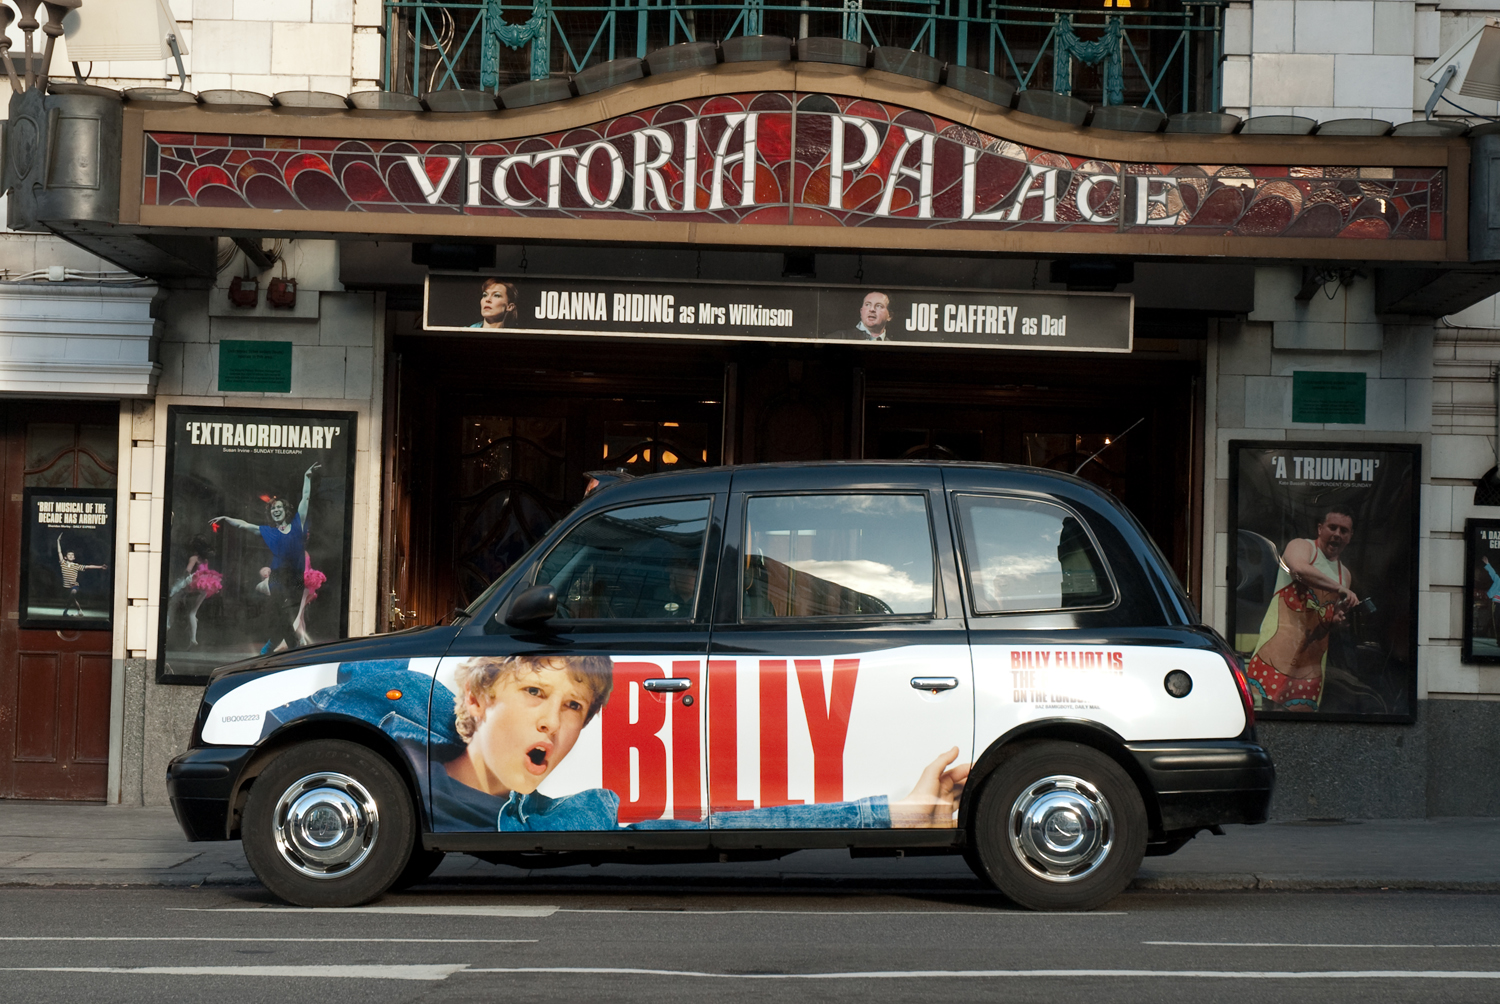 2009 Ubiquitous taxi advertising campaign for AKA - Billy Elliott is the best show on the London stage